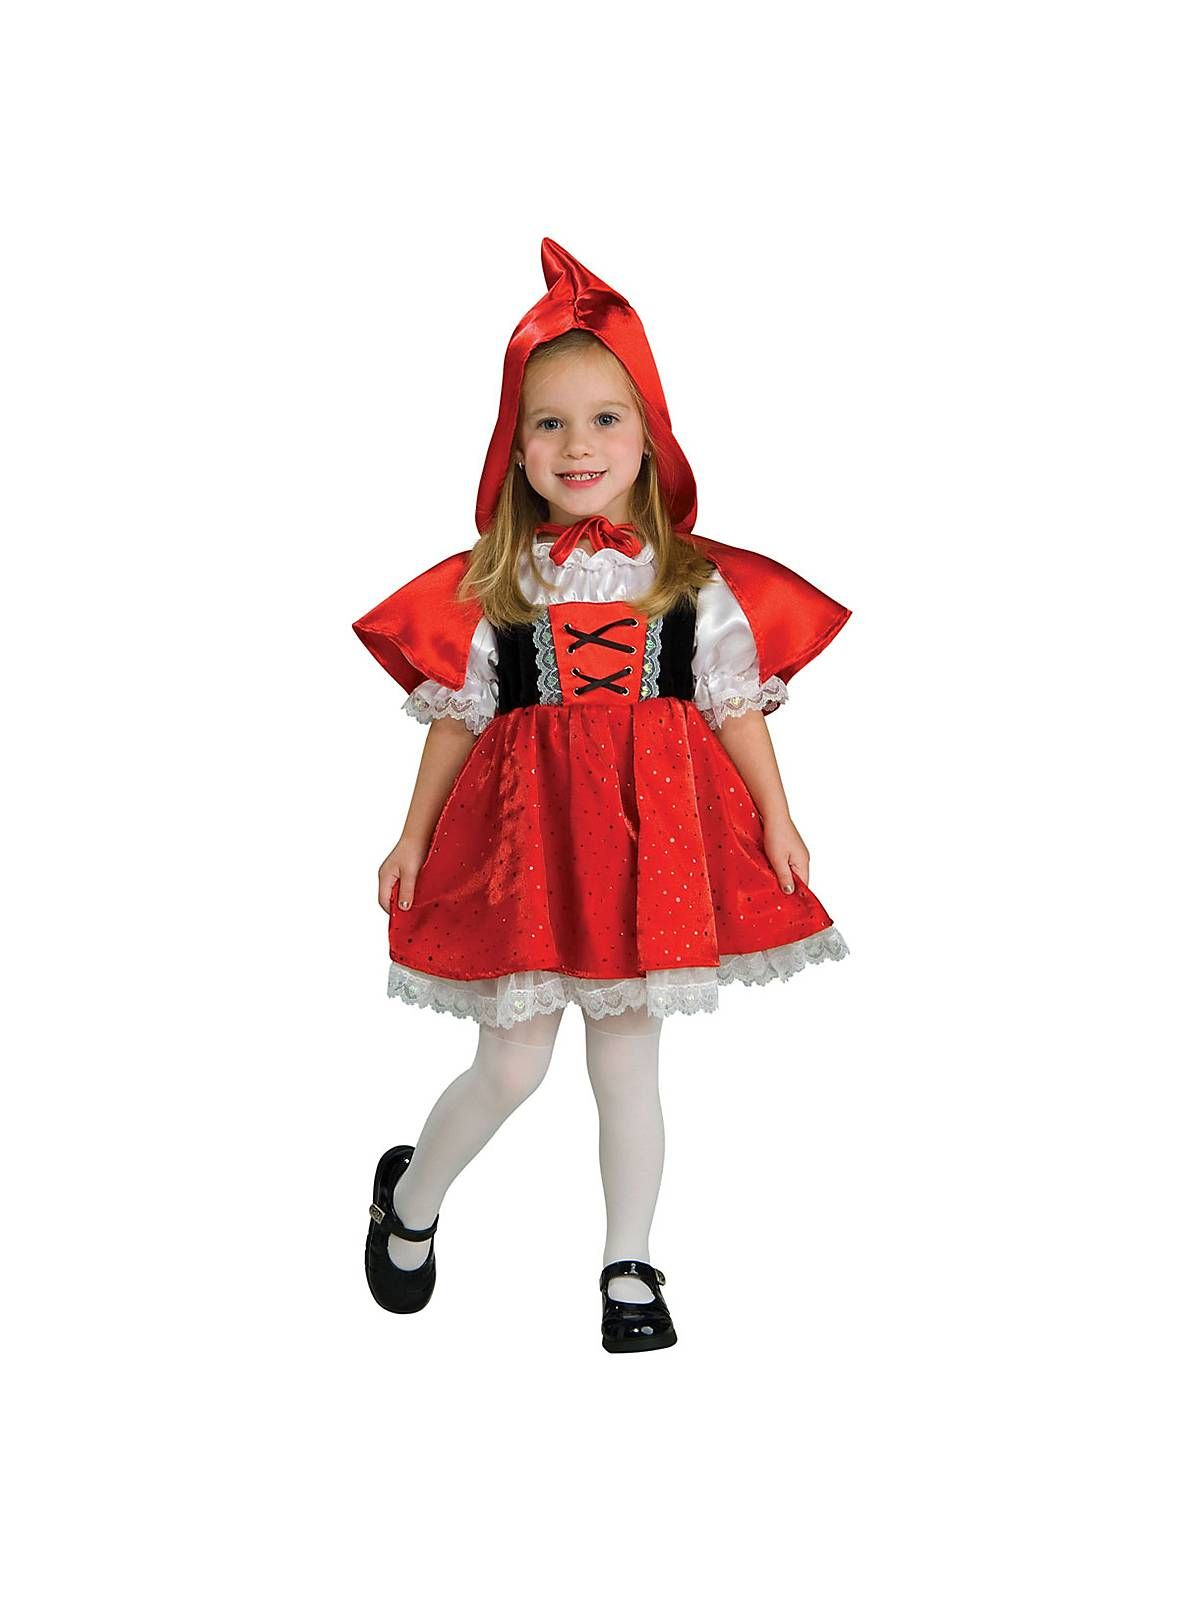 Toddler Little Red Riding Hood Costume Toddler Costumes Girl Red Riding Hood Costume Little Red Riding Hood Halloween Costume